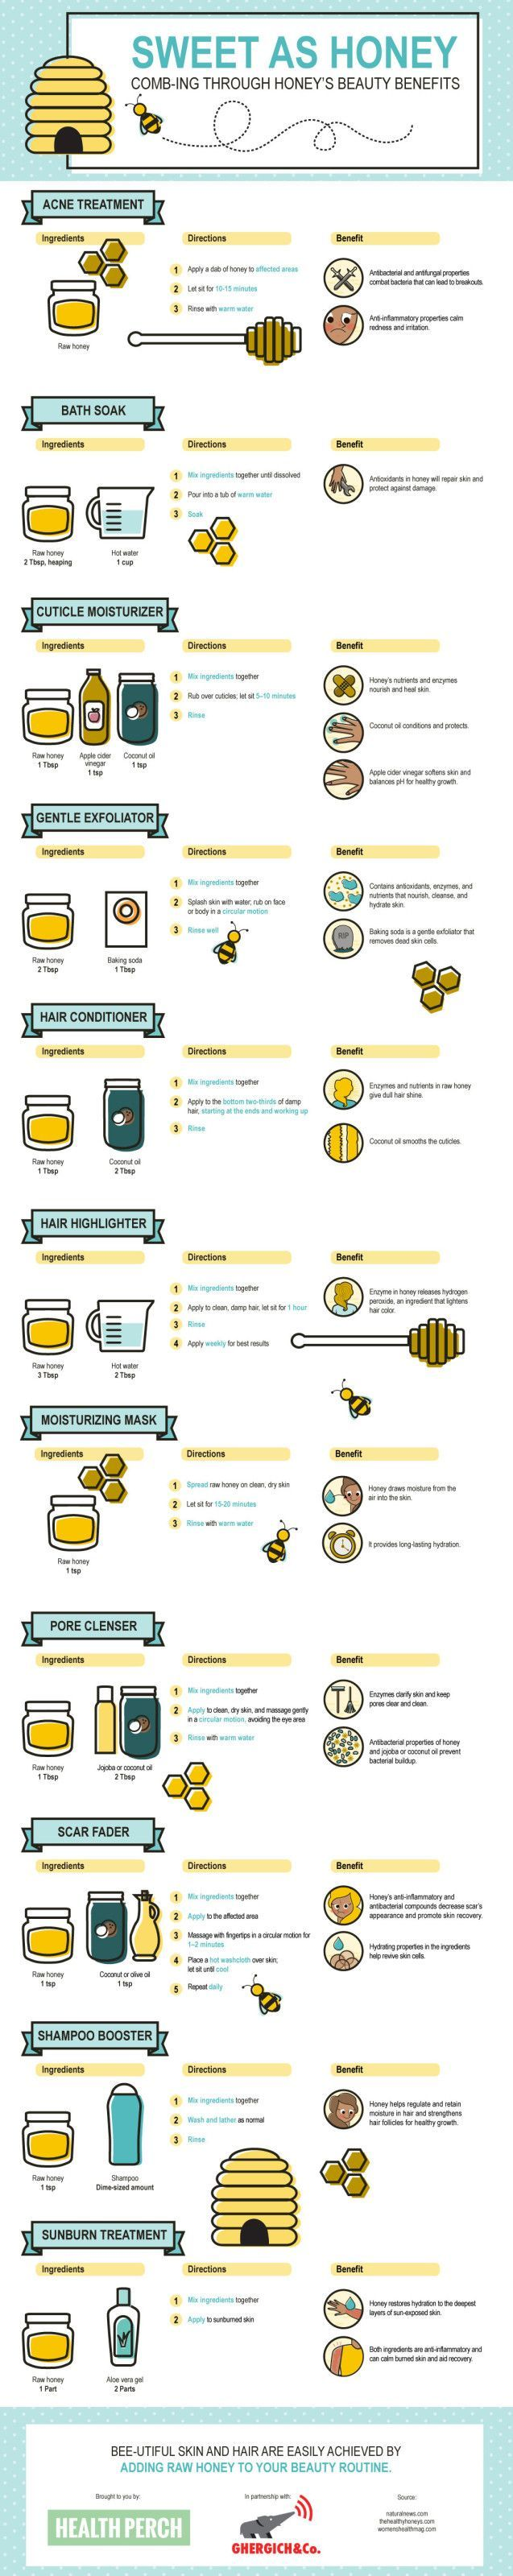 11 Awesome Beauty Benefits of Honey | Best Natural Beauty Tips For Skincare And More! by Makeup Tutorials at http://makeuptutorials.com/11-awesome-beauty-benefits-of-honey/